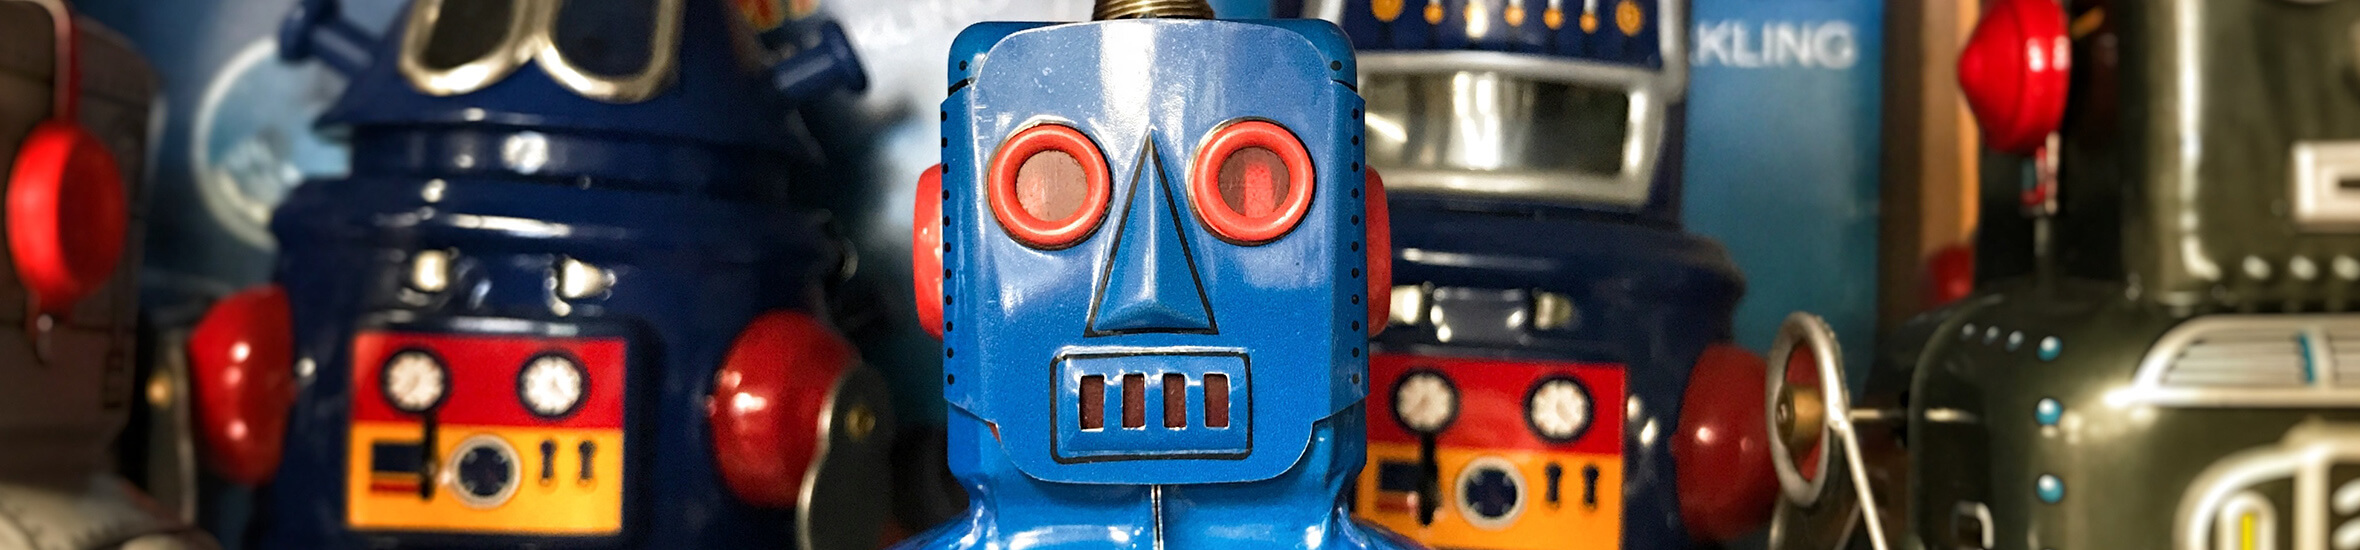 Pourquoi utiliser du Marketing Automation en B2B ?